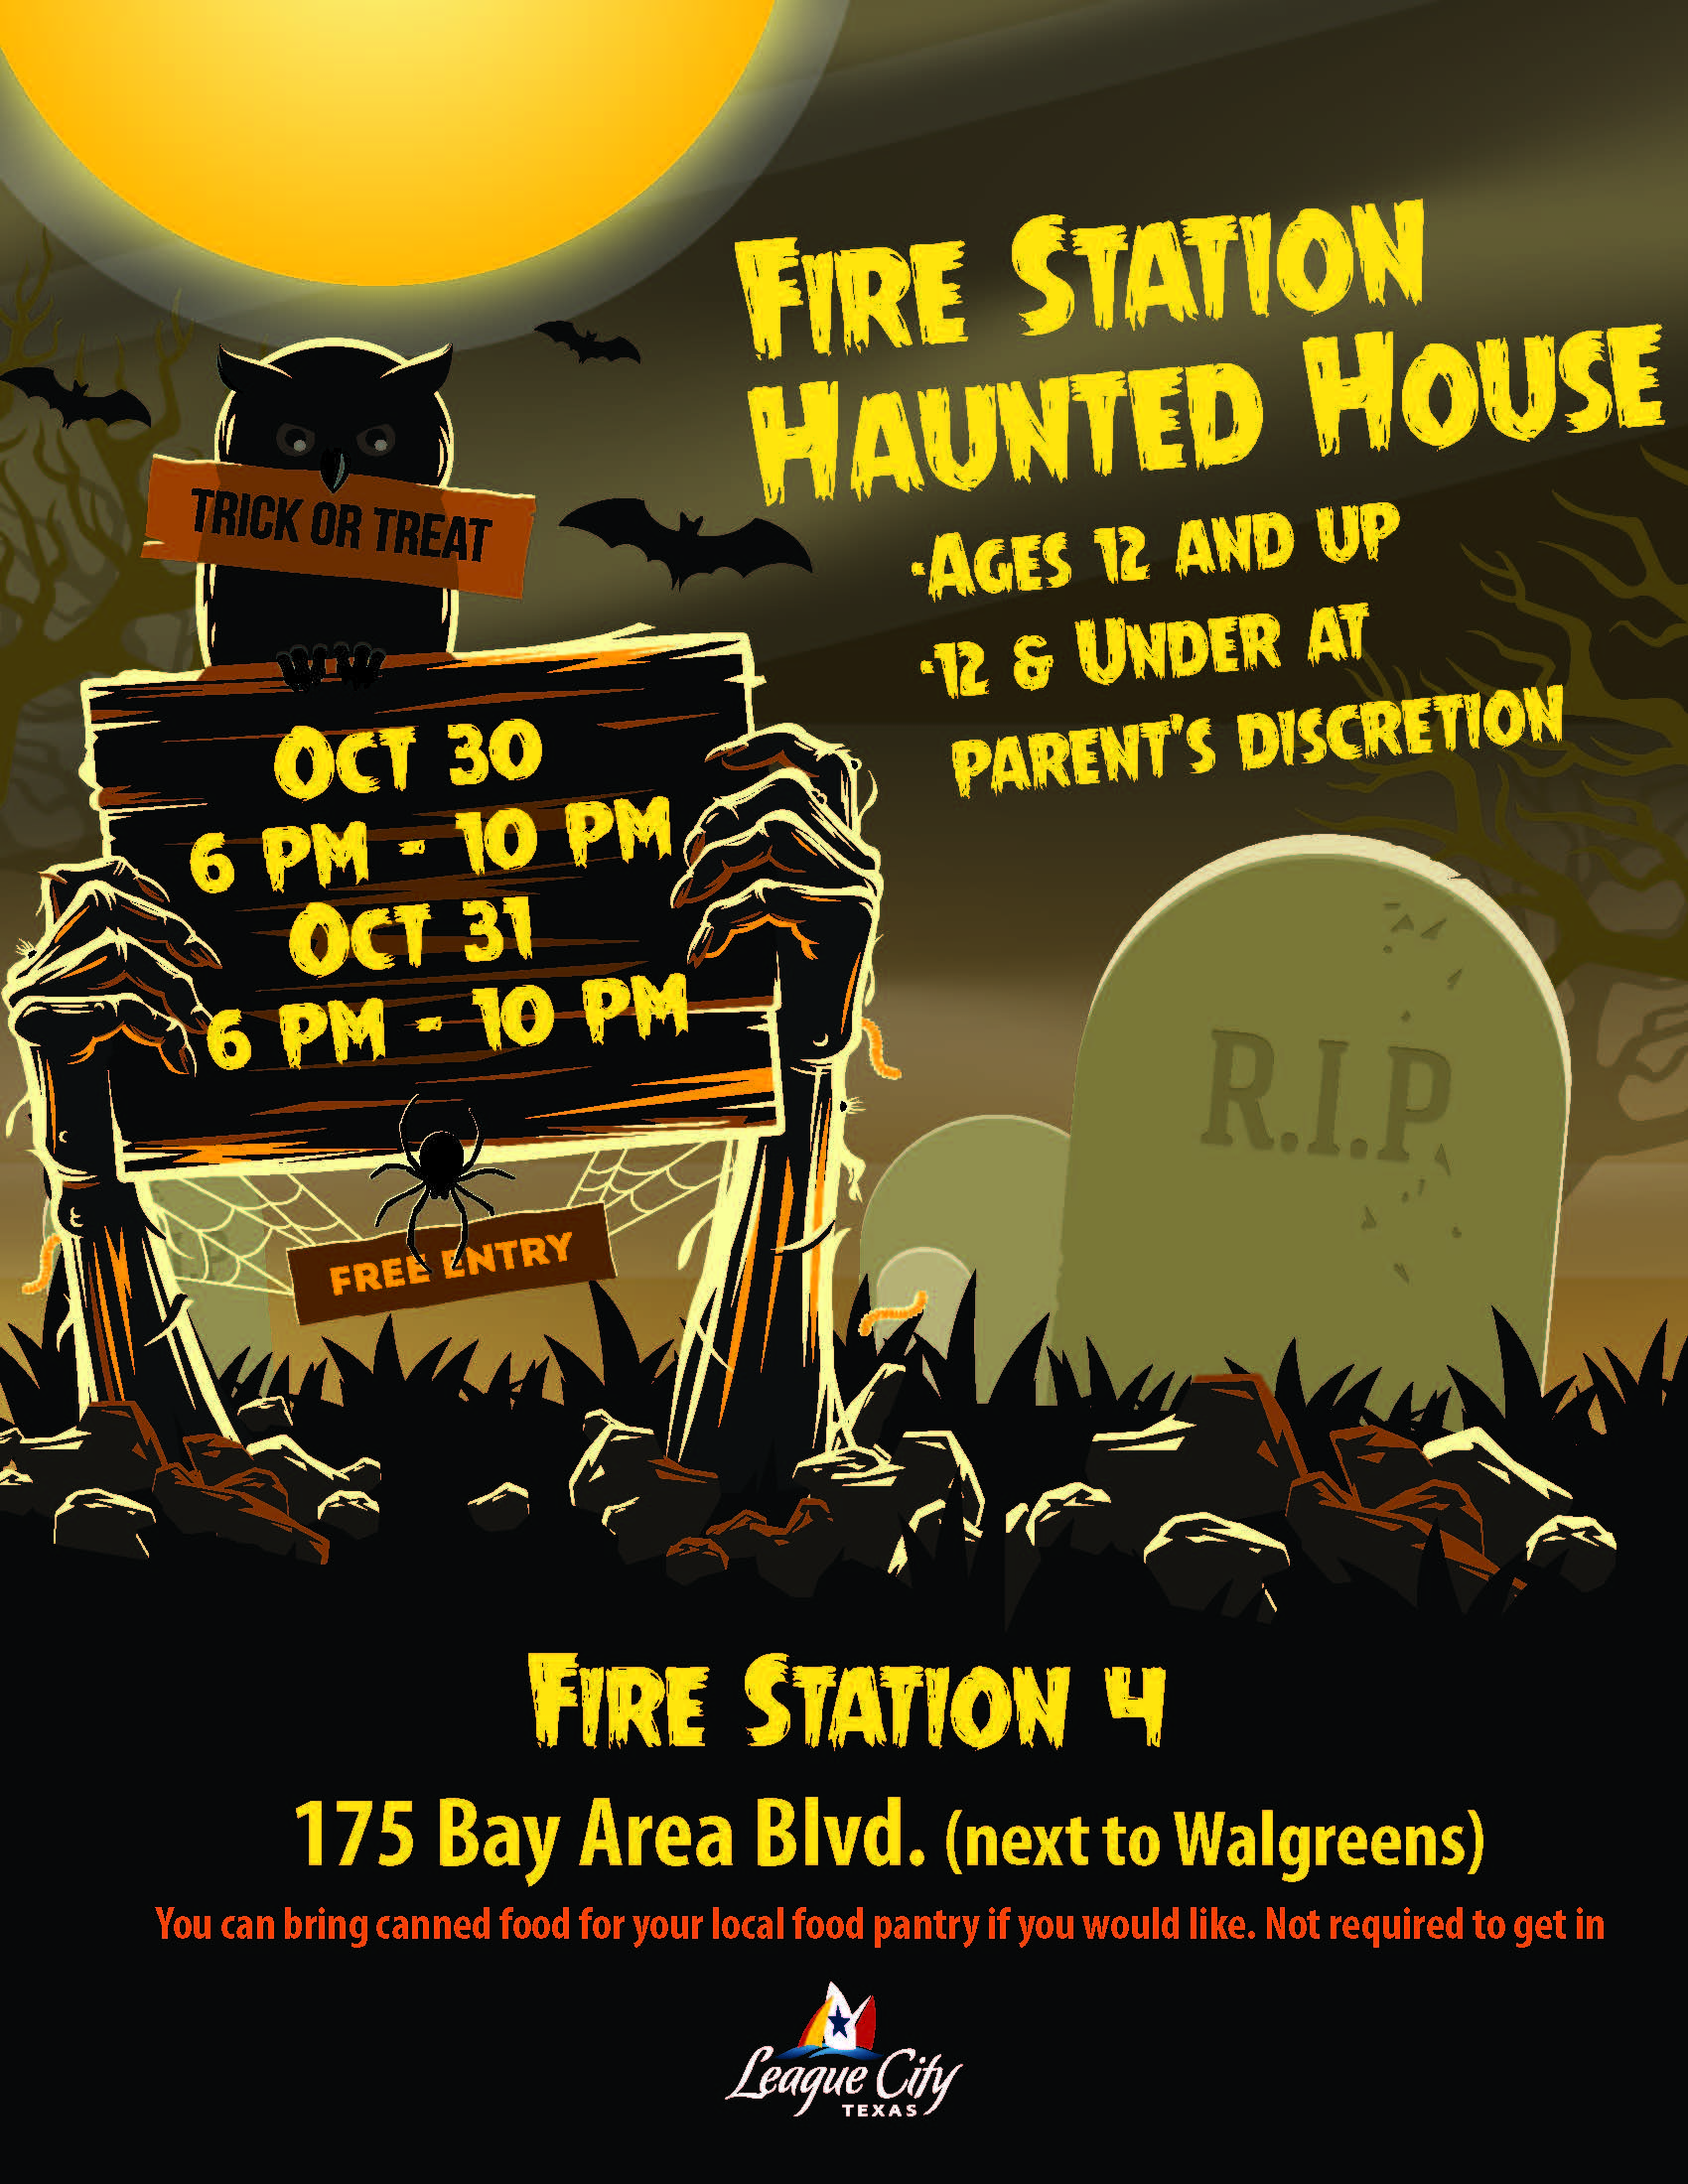 Fire Station Haunted House.jpg